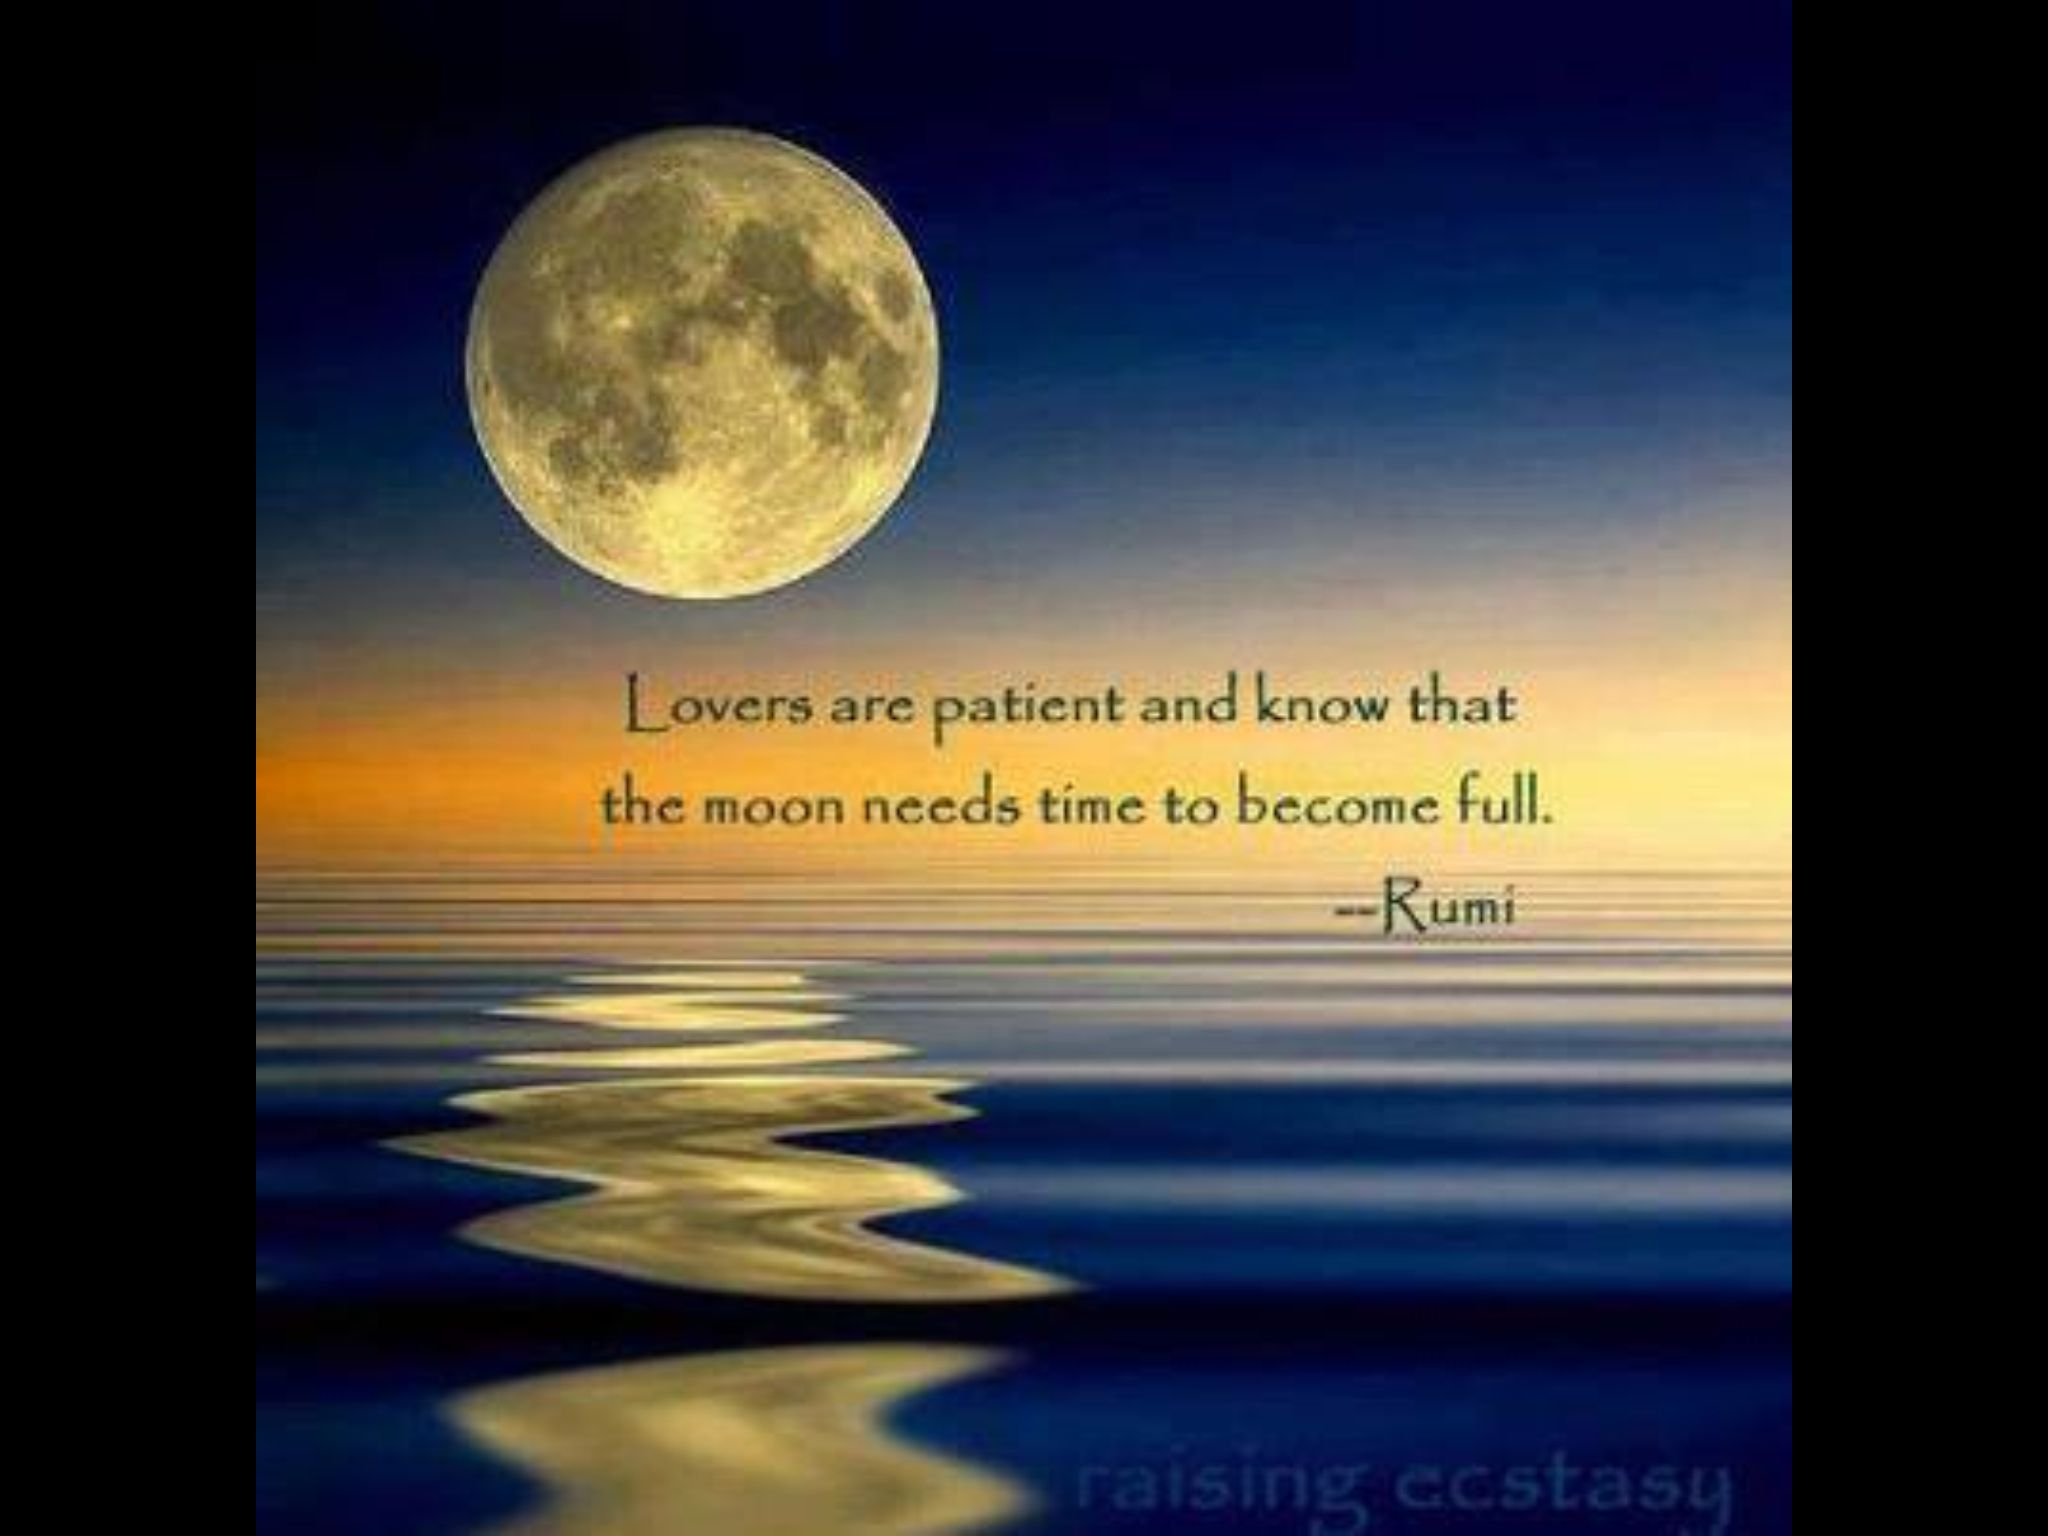 Rumi Poetic Love Rumi Rumi Love Proverbs 27 Rumi Quotes